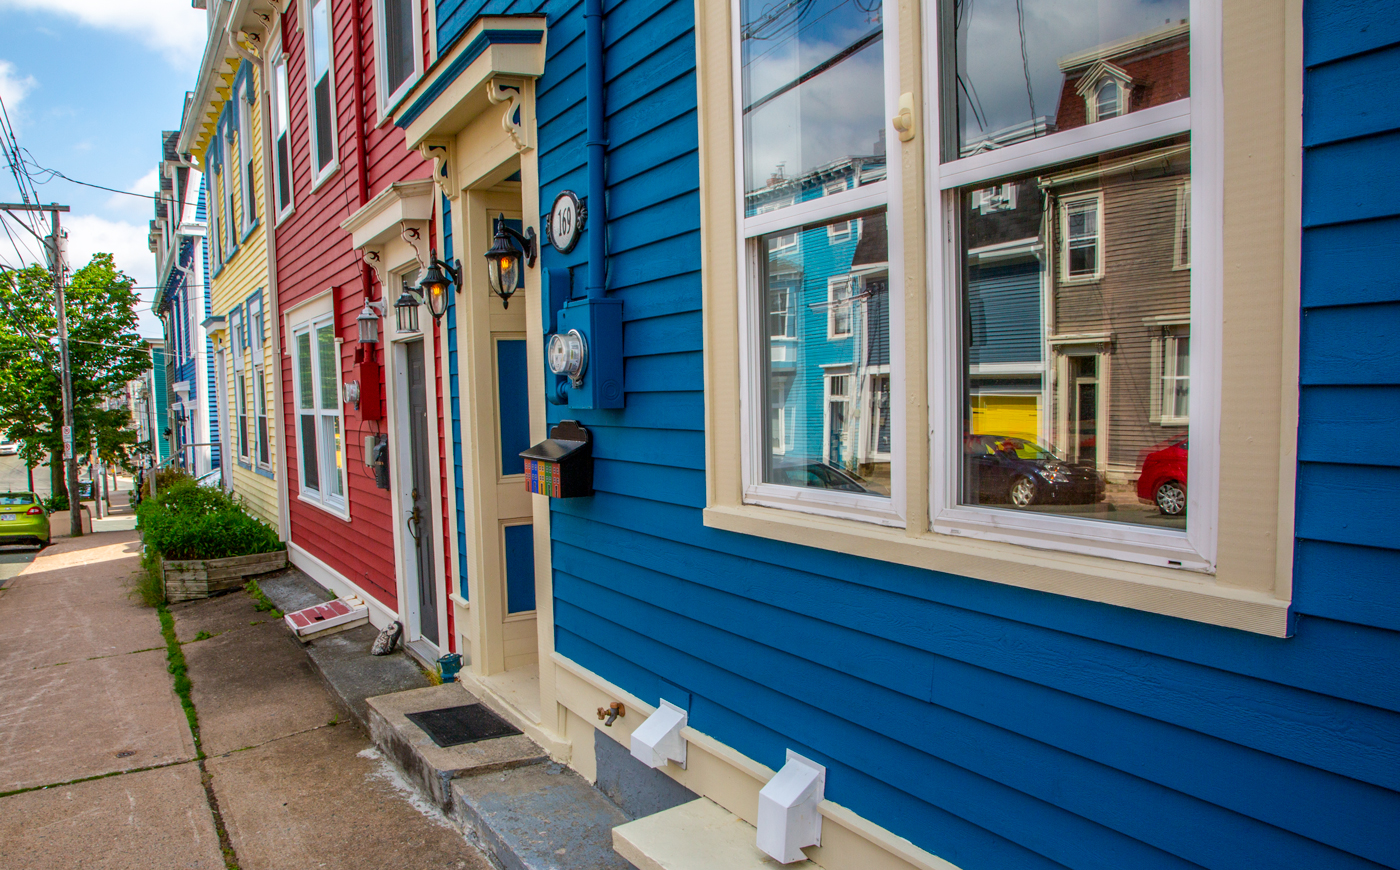 Jelly Bean Row workshop - Take a two hour tour of the Jelly Bean Houses at downtown St. John's.